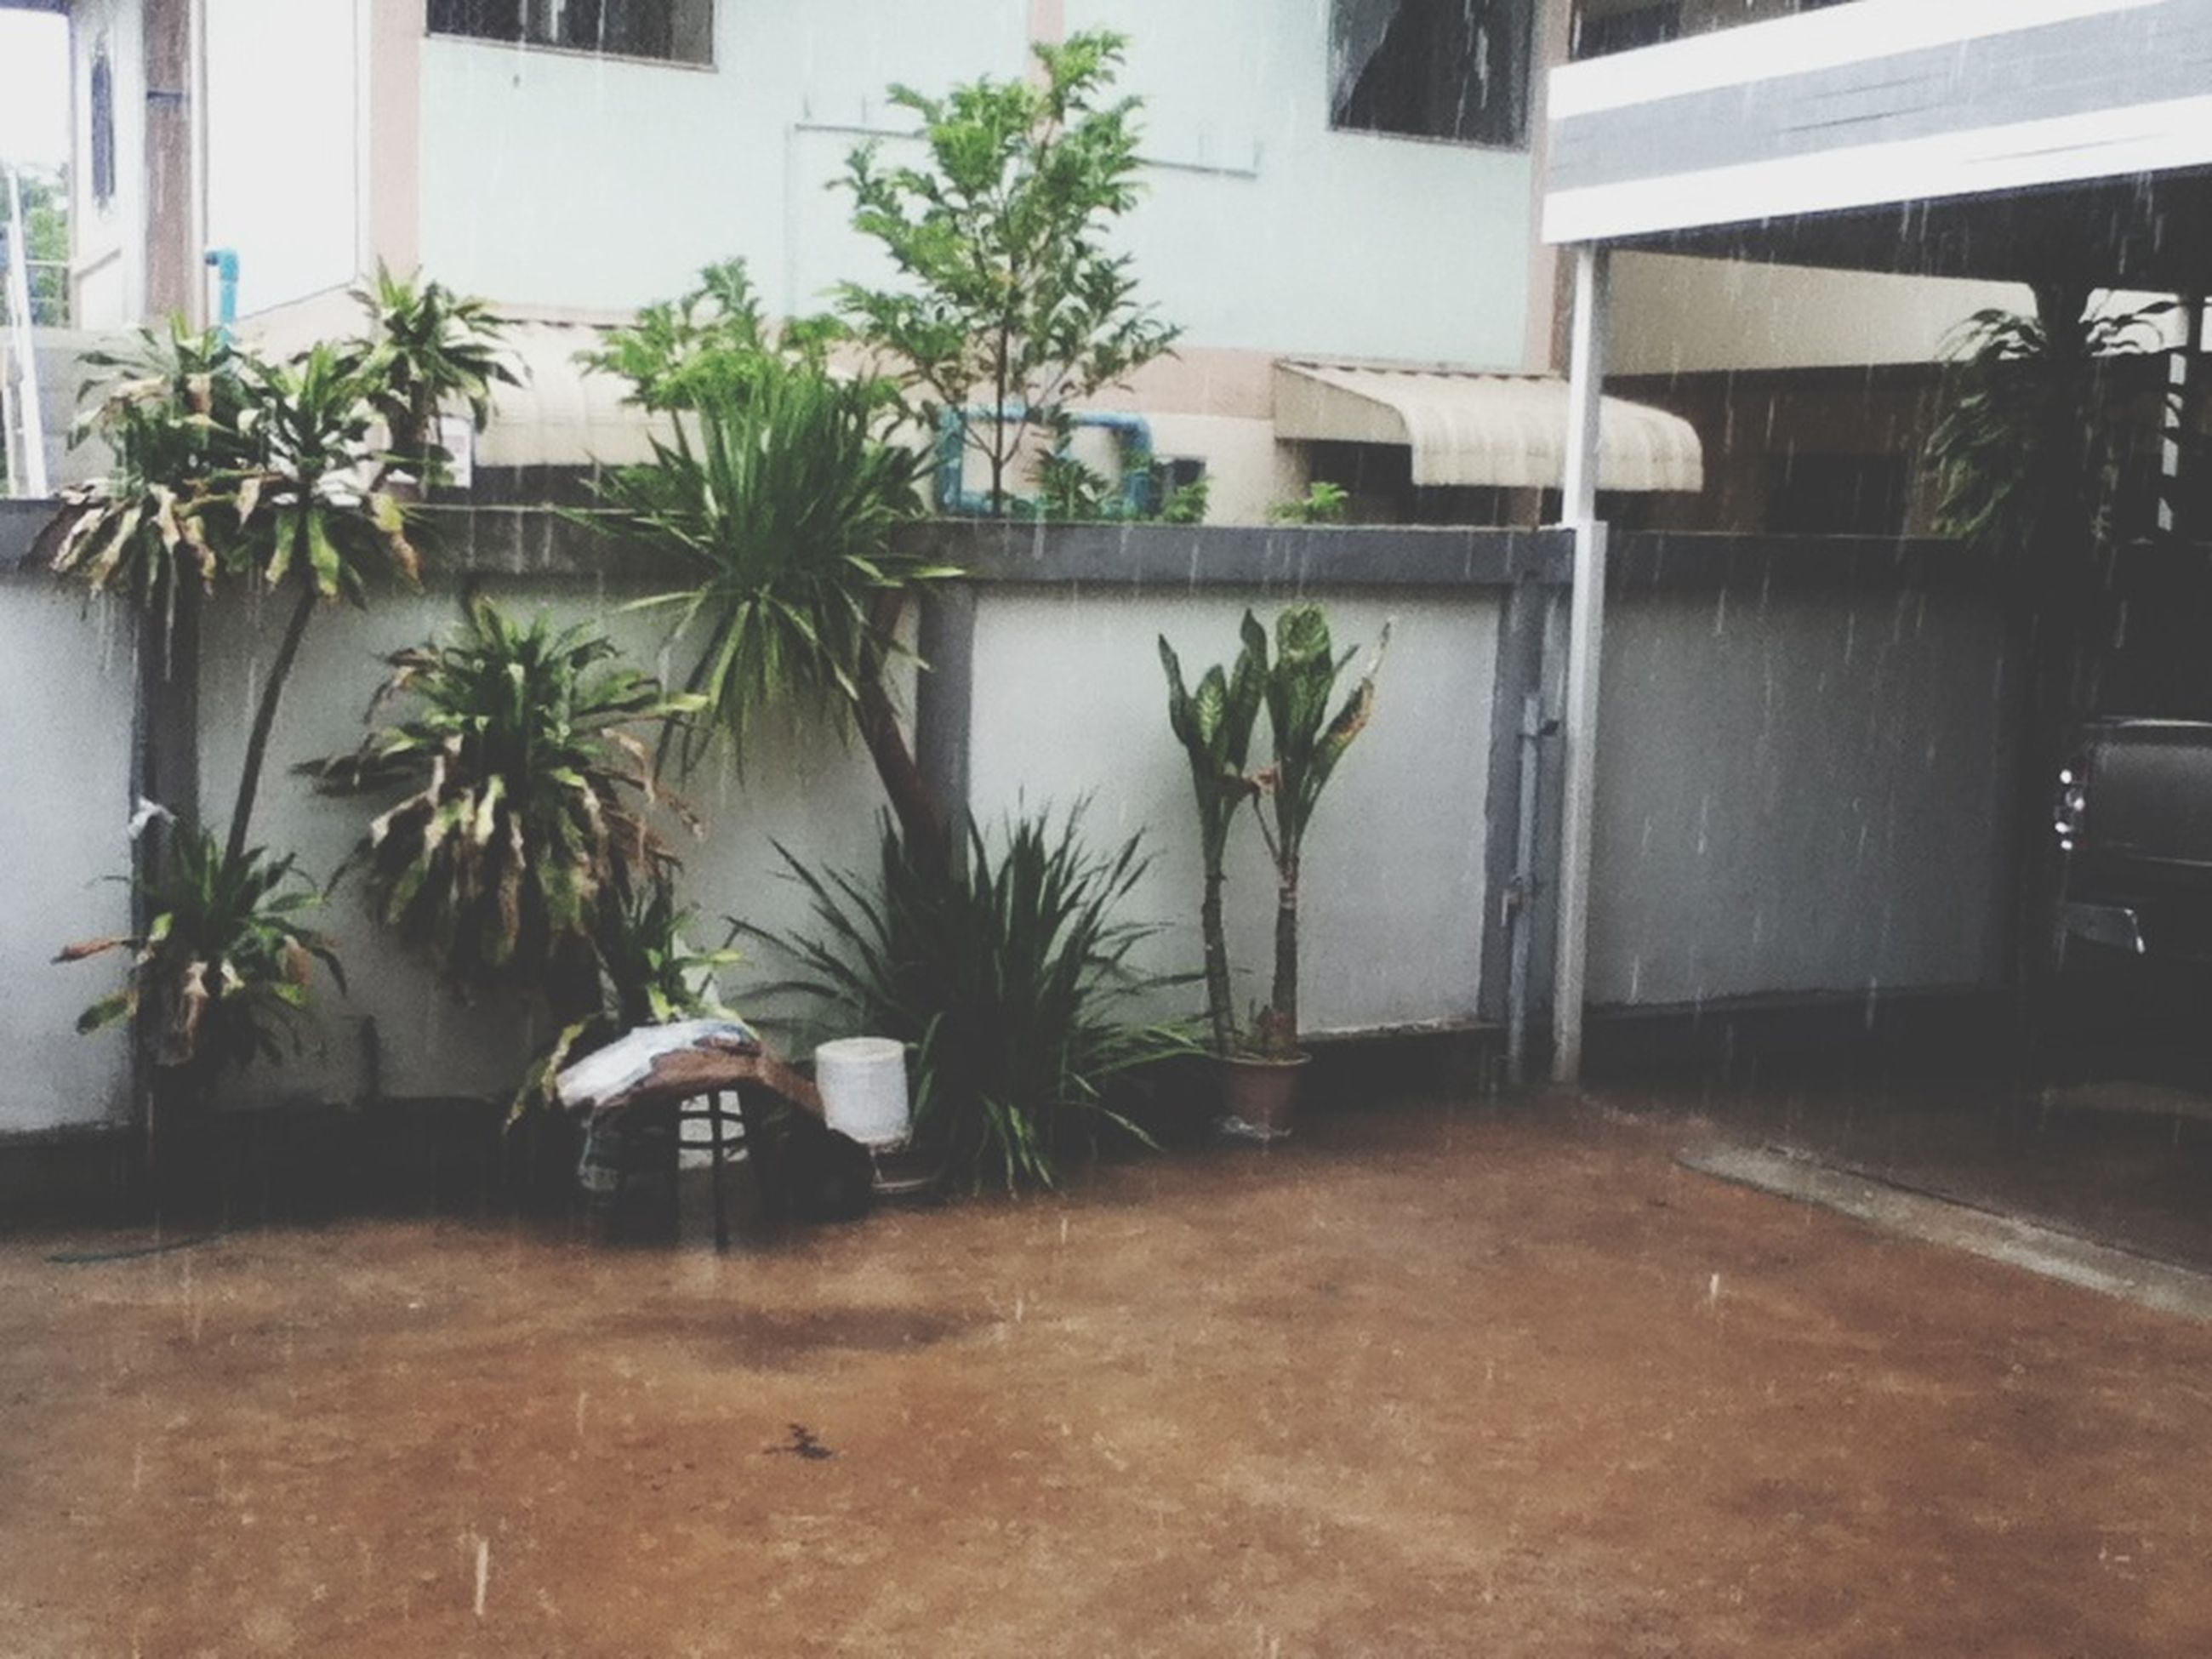 architecture, built structure, building exterior, potted plant, house, plant, palm tree, growth, tree, residential building, residential structure, window, building, day, no people, outdoors, sunlight, chair, street, empty